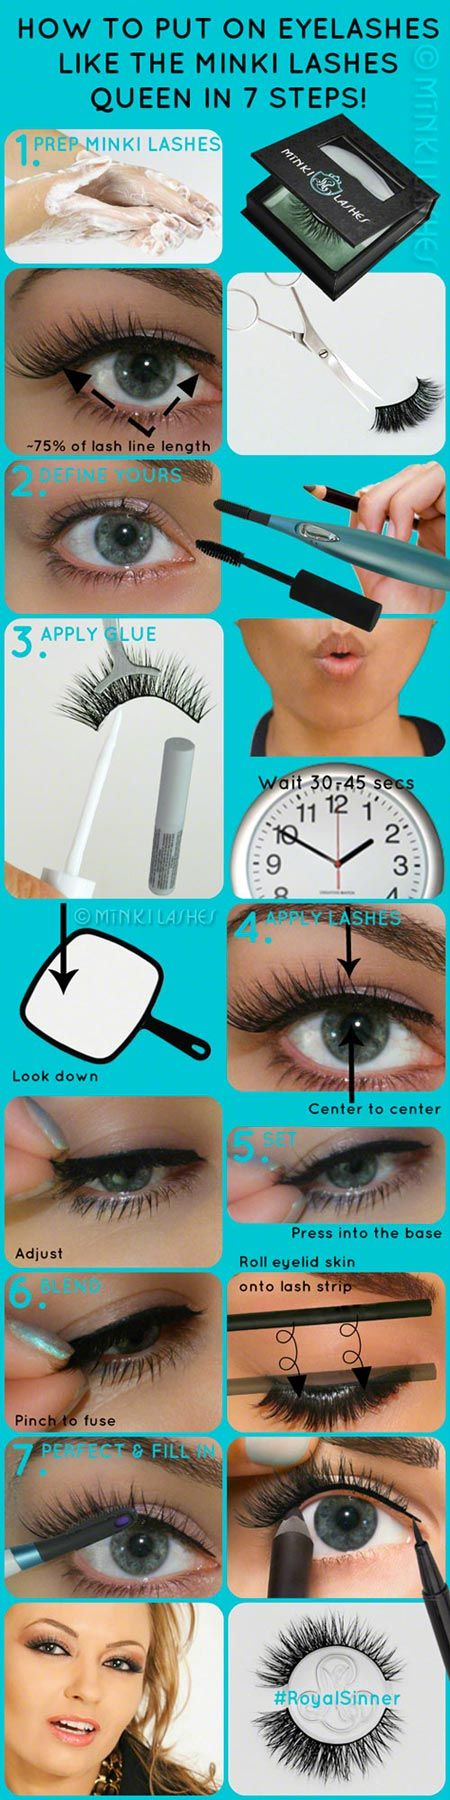 How to Put on Eyelashes by Minki Lashes | Real Mink, Cruelty Free, A-List Hollywood Lashes | Have just read the whole site & am intrigued by these long-life falsies. Also best, detailed application tutorial (written) I've read yet.